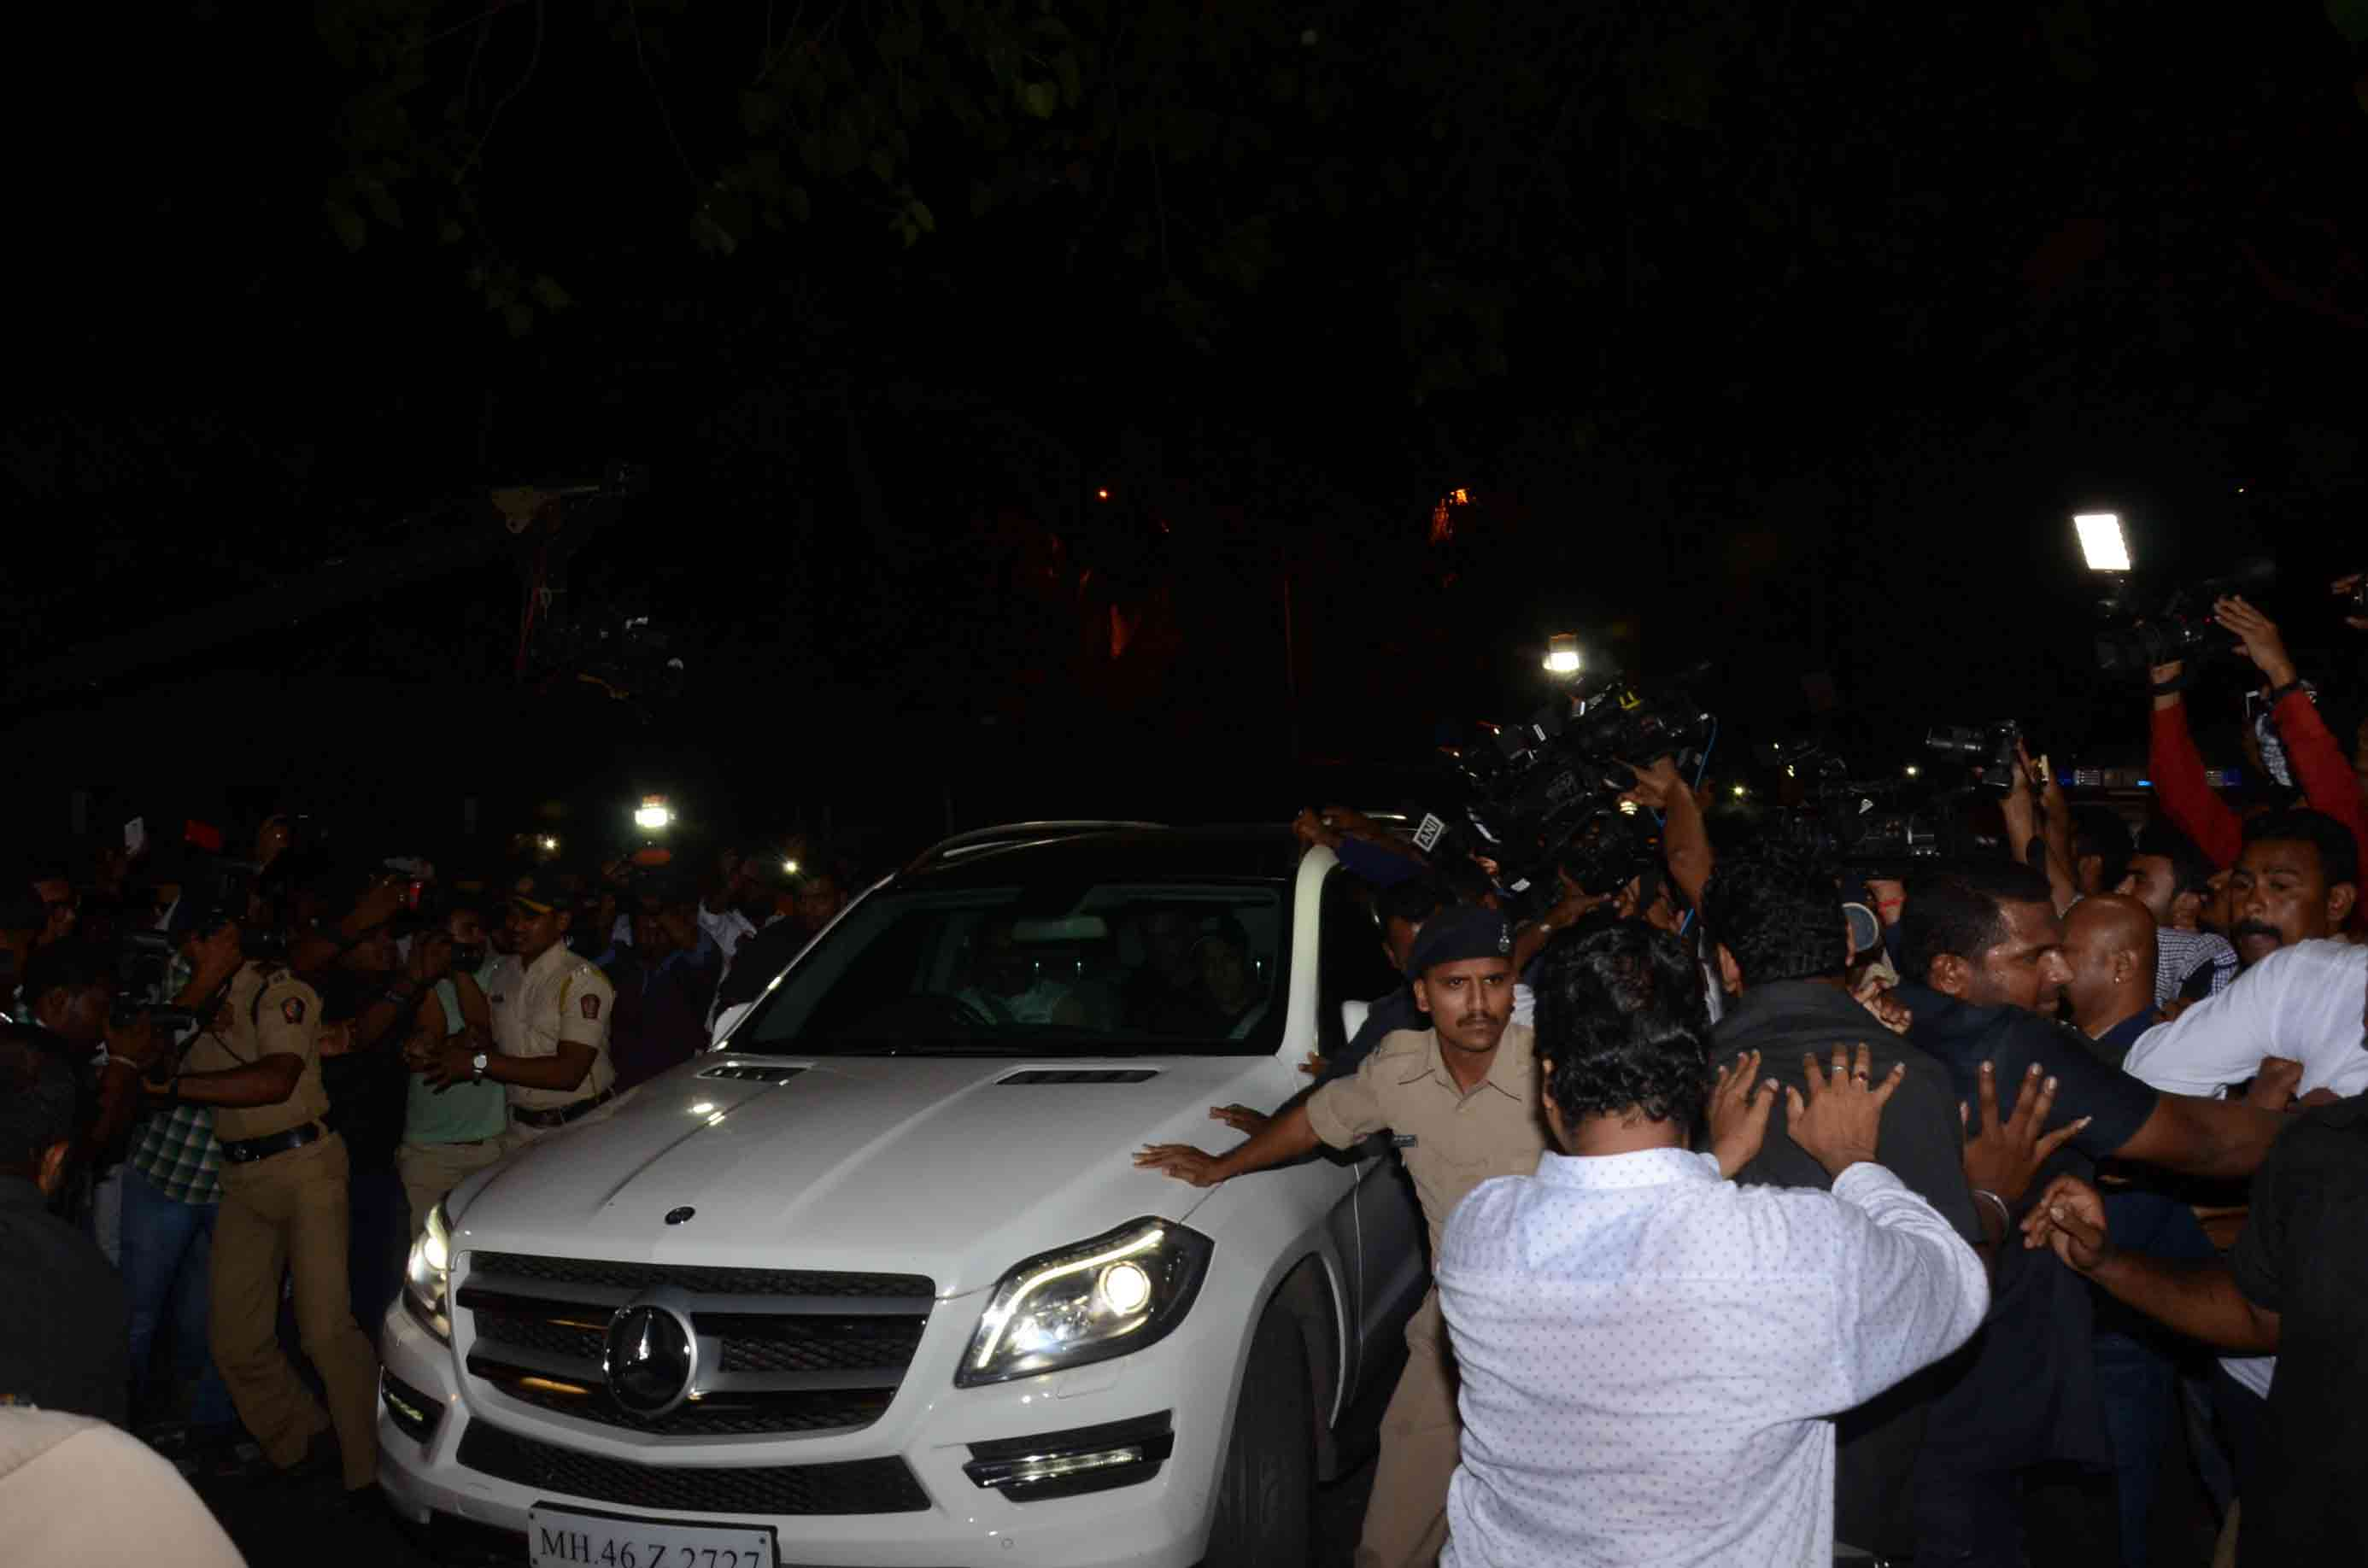 Salman Khan`s fans welcomes him in mumbai after releasing from jail in Jodhpur